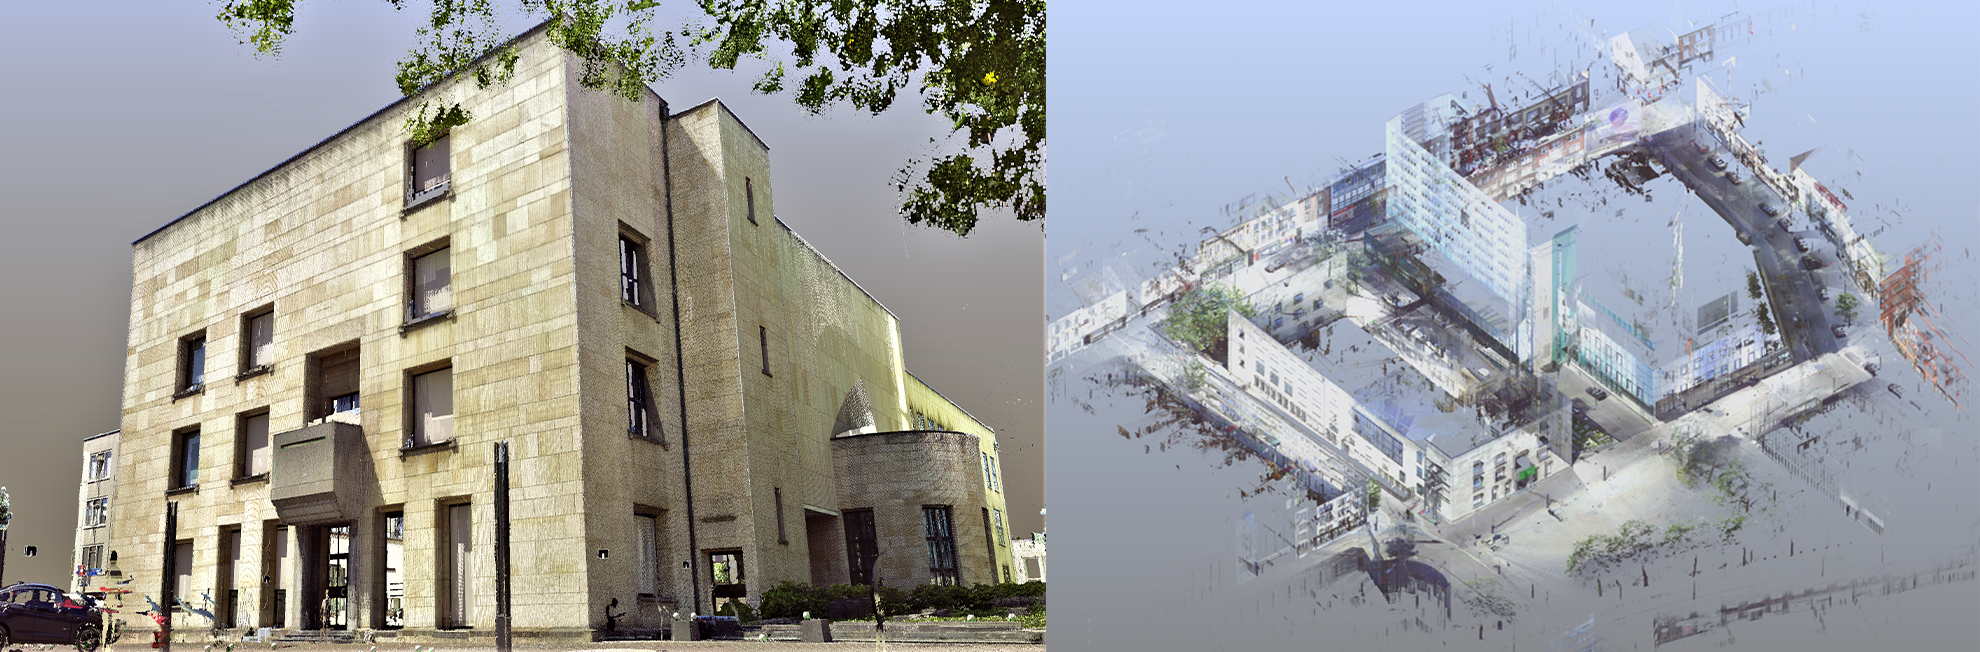 Point Cloud Heerlen